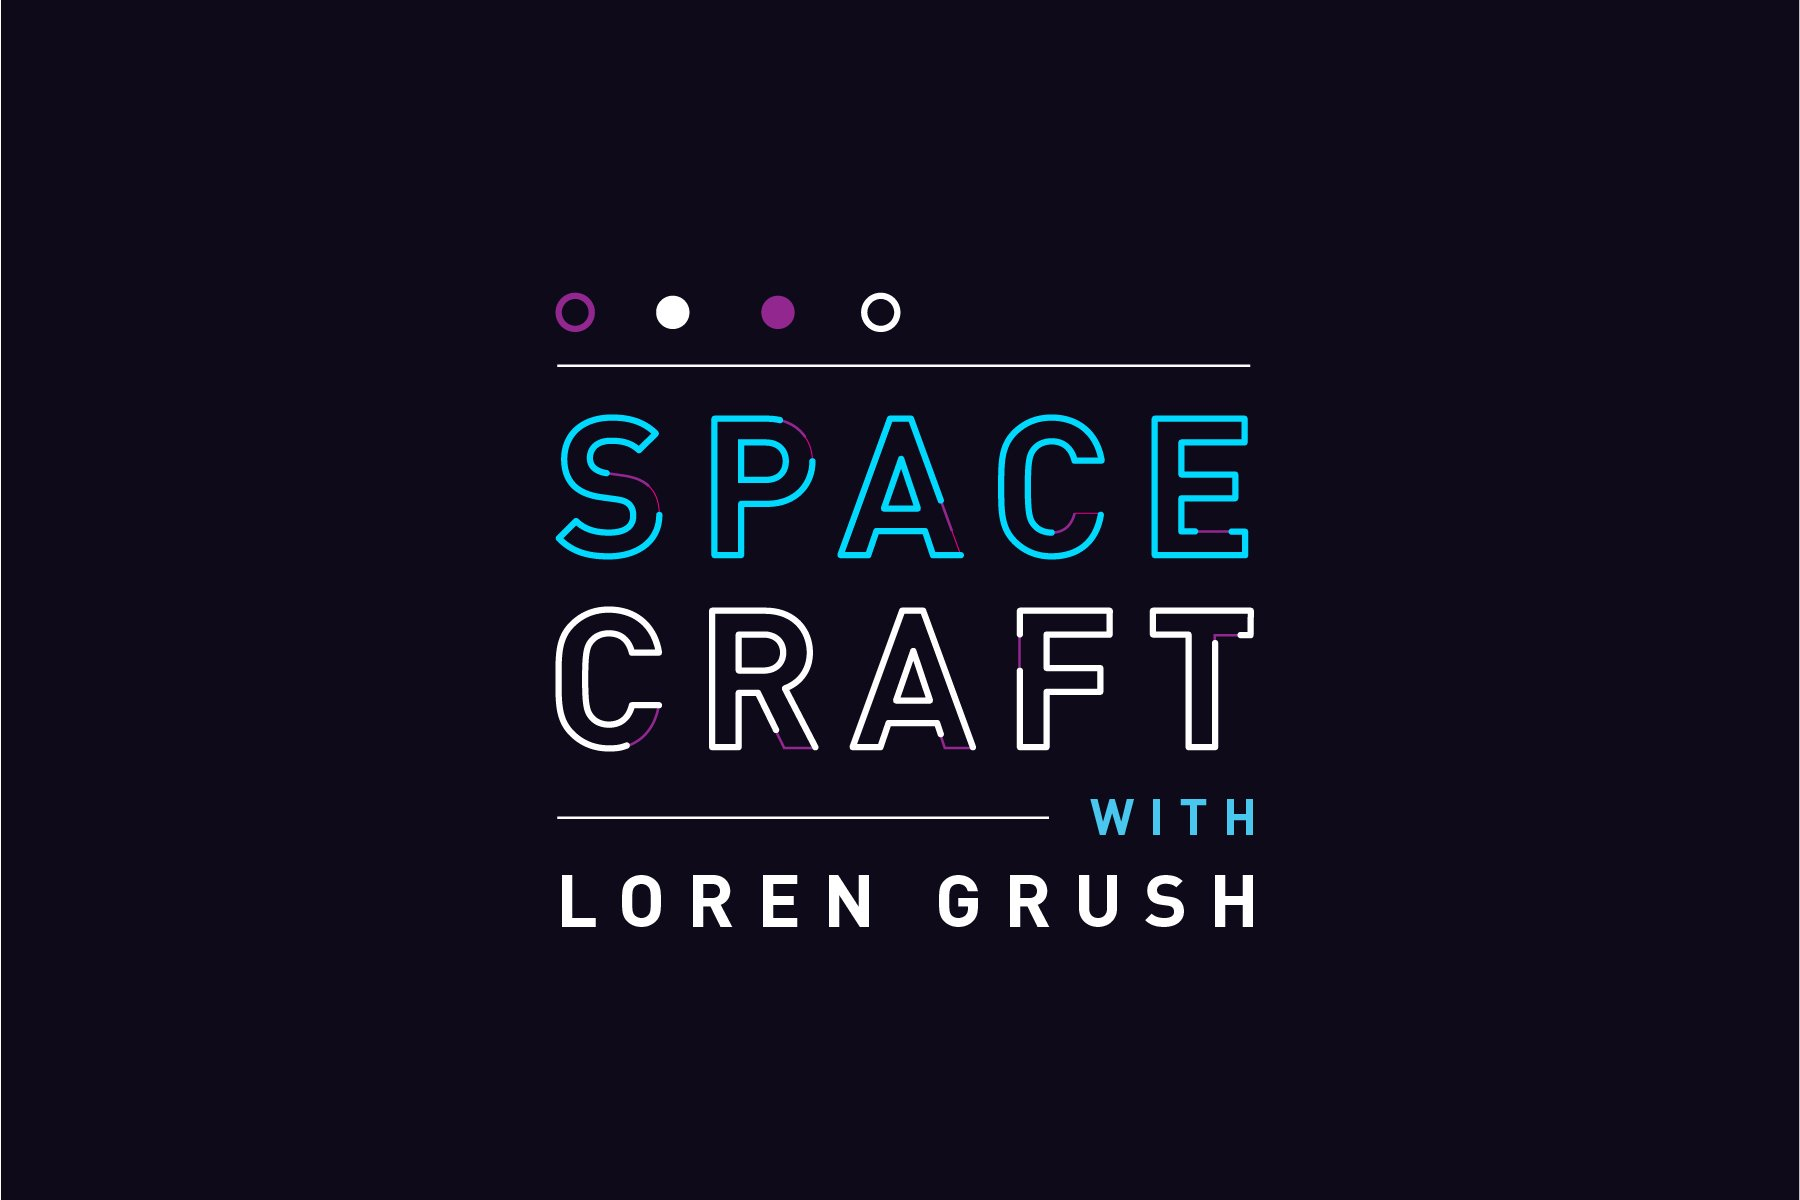 psst @lorengrush's new show launches on tuesday and it's out of this world https://t.co/DKZktnX5iR